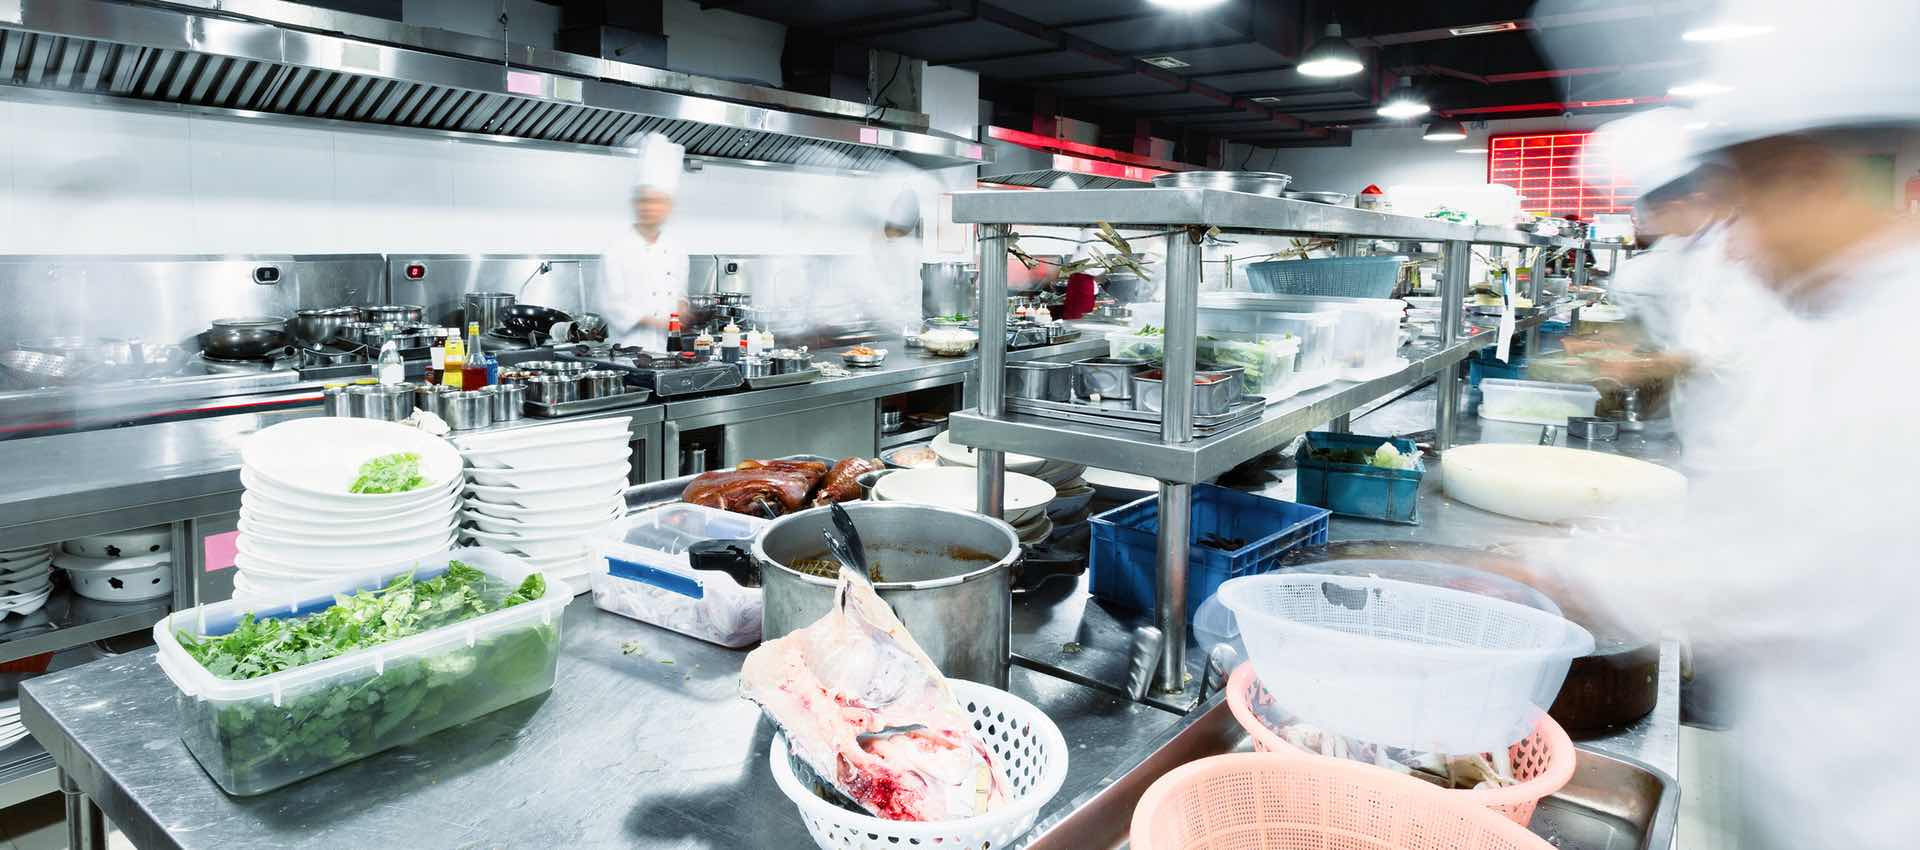 hotels with kitchen handles for drawers hotel cleaning in dallas tx hrs food preparation commercial